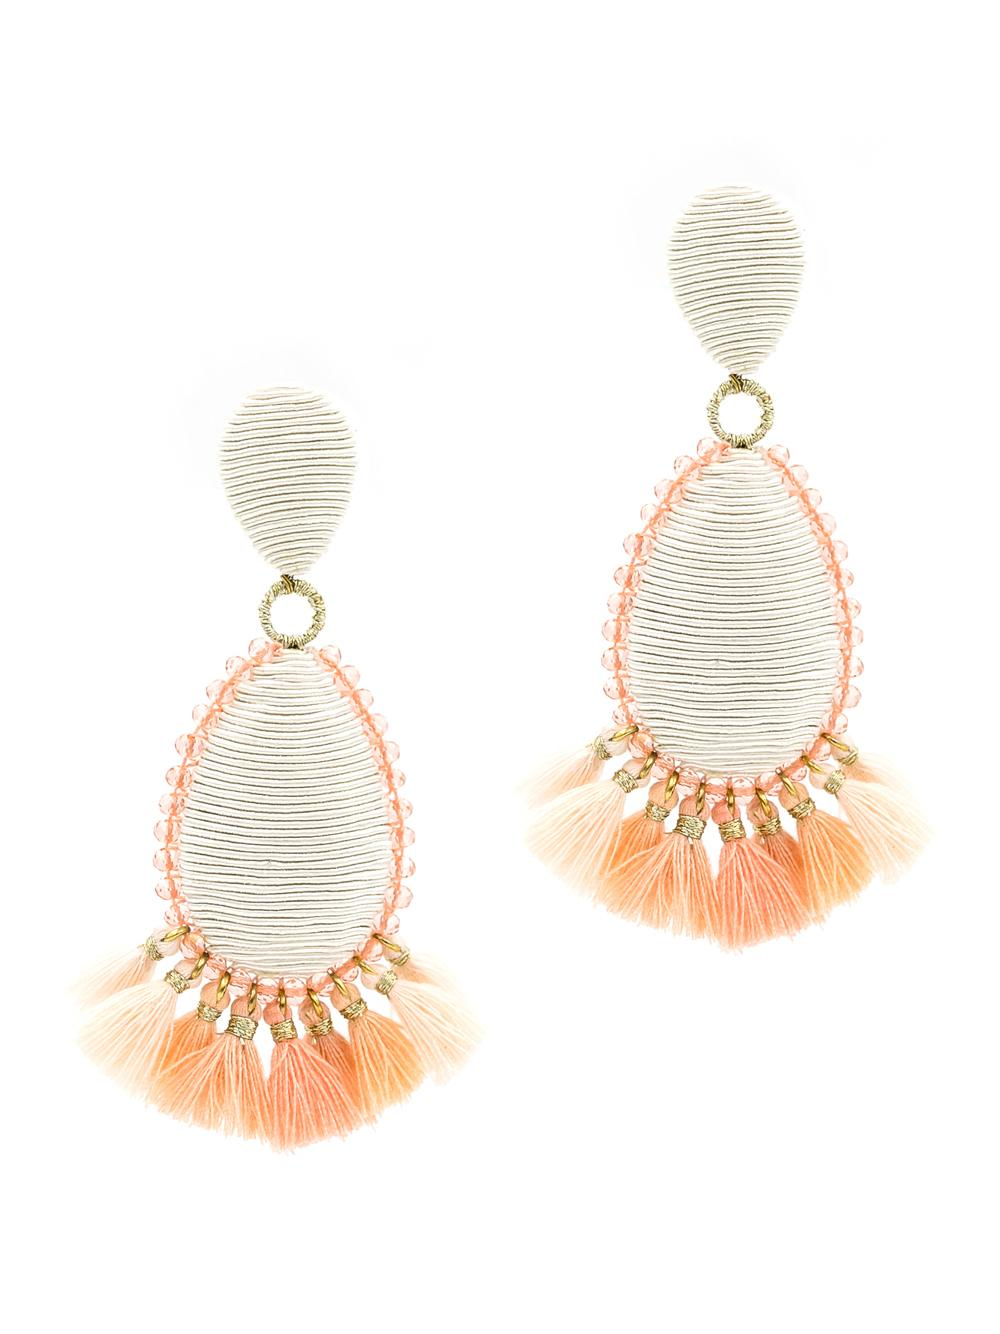 Exuma Tassel Earrings